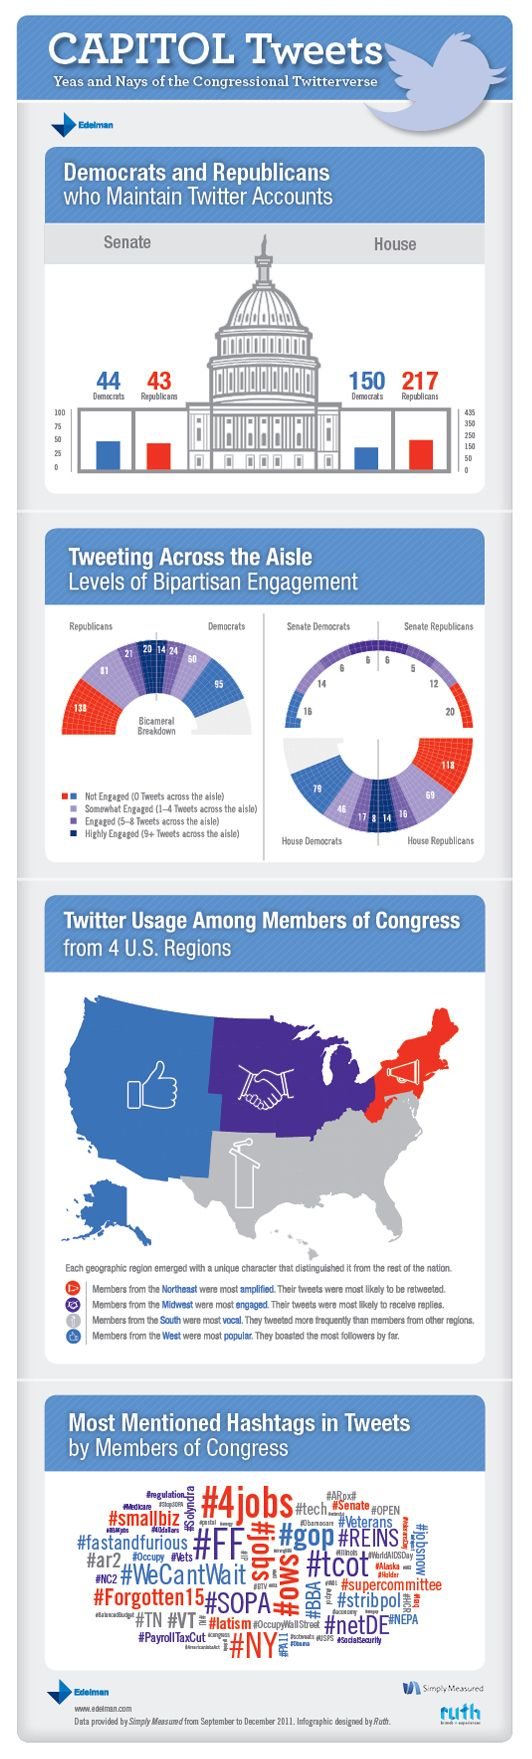 At 100 million monthly active users, much has been written about Twitter's revolutionary impact on information-sharing, reporting and brand management. Capitol Tweets, a study released today by Edelman's D.C. office, explores a narrow impact of Twitter – its role in the democratization of political communication and use among U.S. Members of Congress.